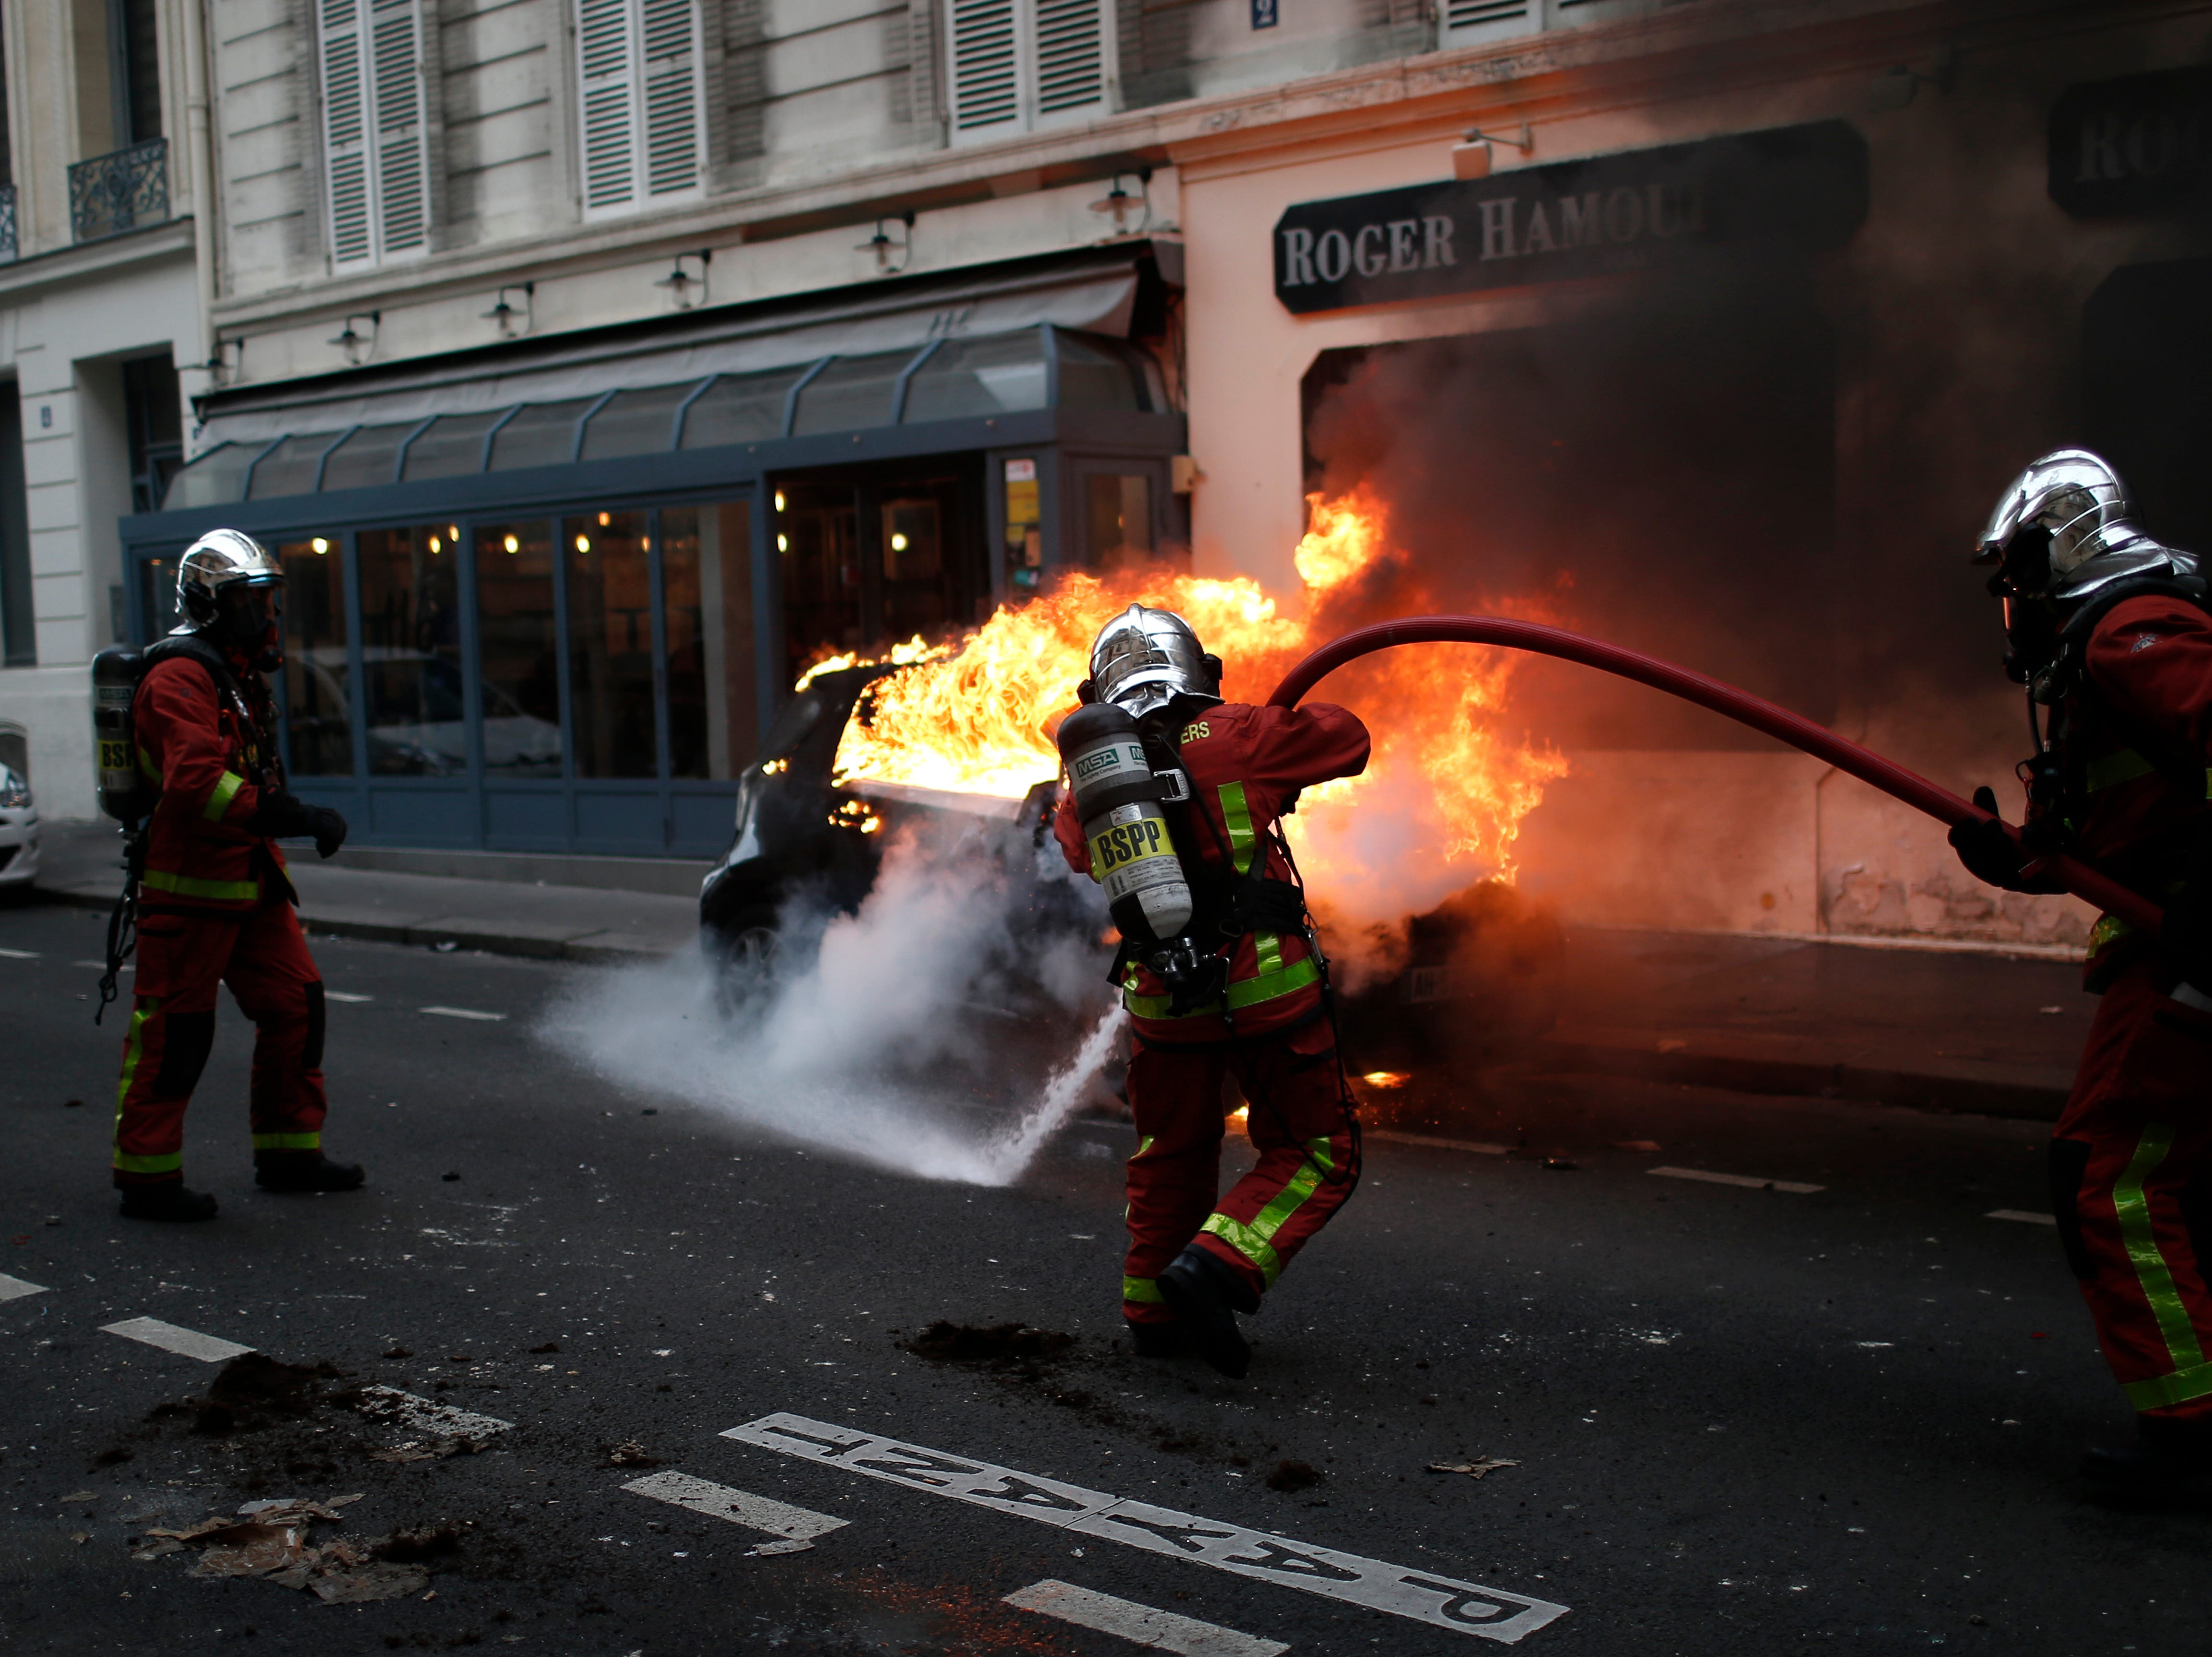 Firefighters put off a fire after clashes Saturday, Dec. 8, 2018, in Paris. French riot police fired tear gas and water cannon in Paris on Saturday, trying to stop thousands of yellow-vested protesters from converging on the presidential palace to express their anger at high taxes and French President Emmanuel Macron.